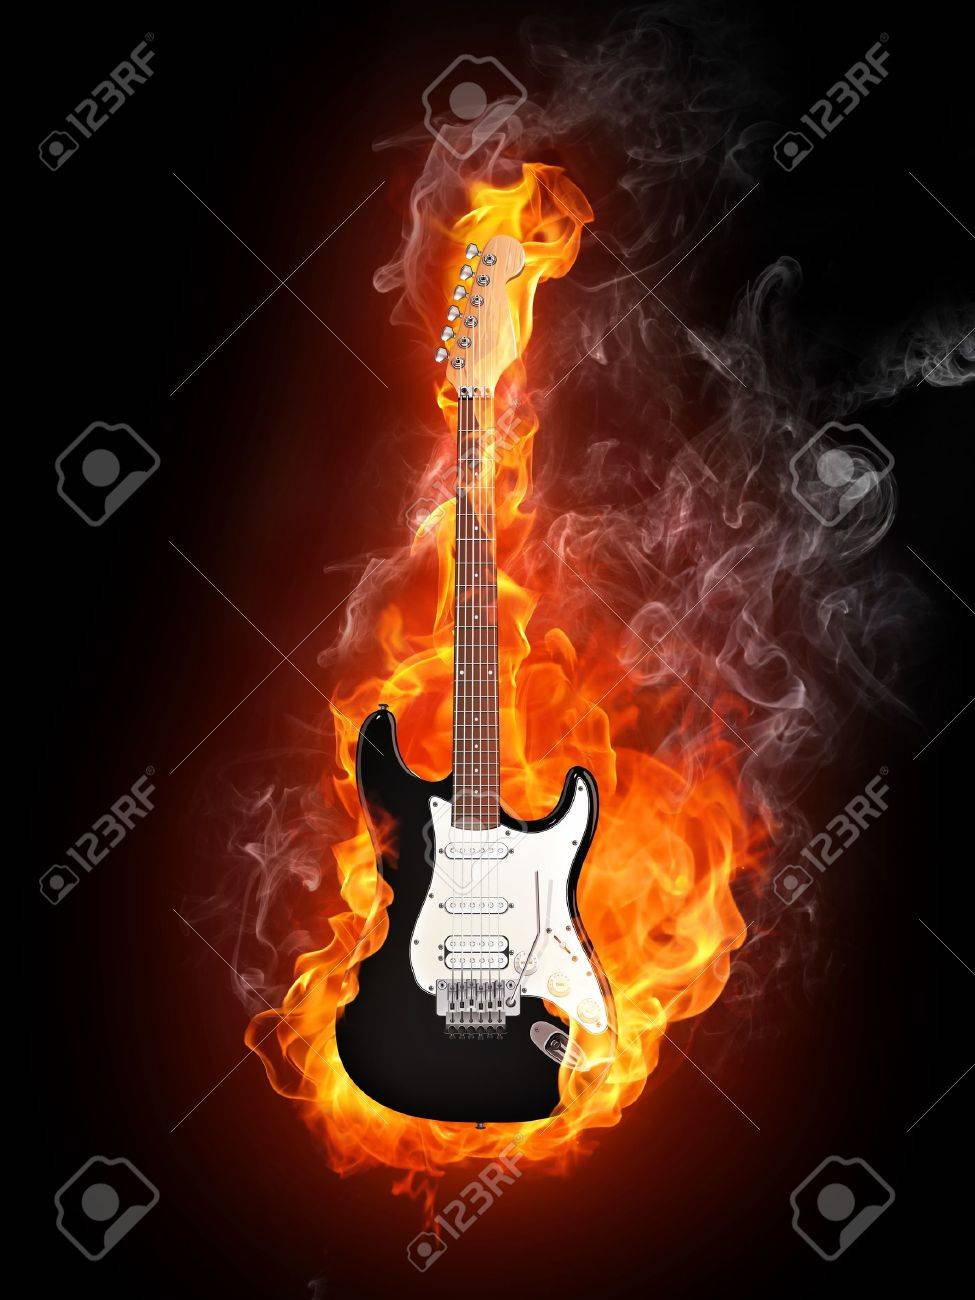 Black Electric Guitar With Flames Electric Guitar in fire